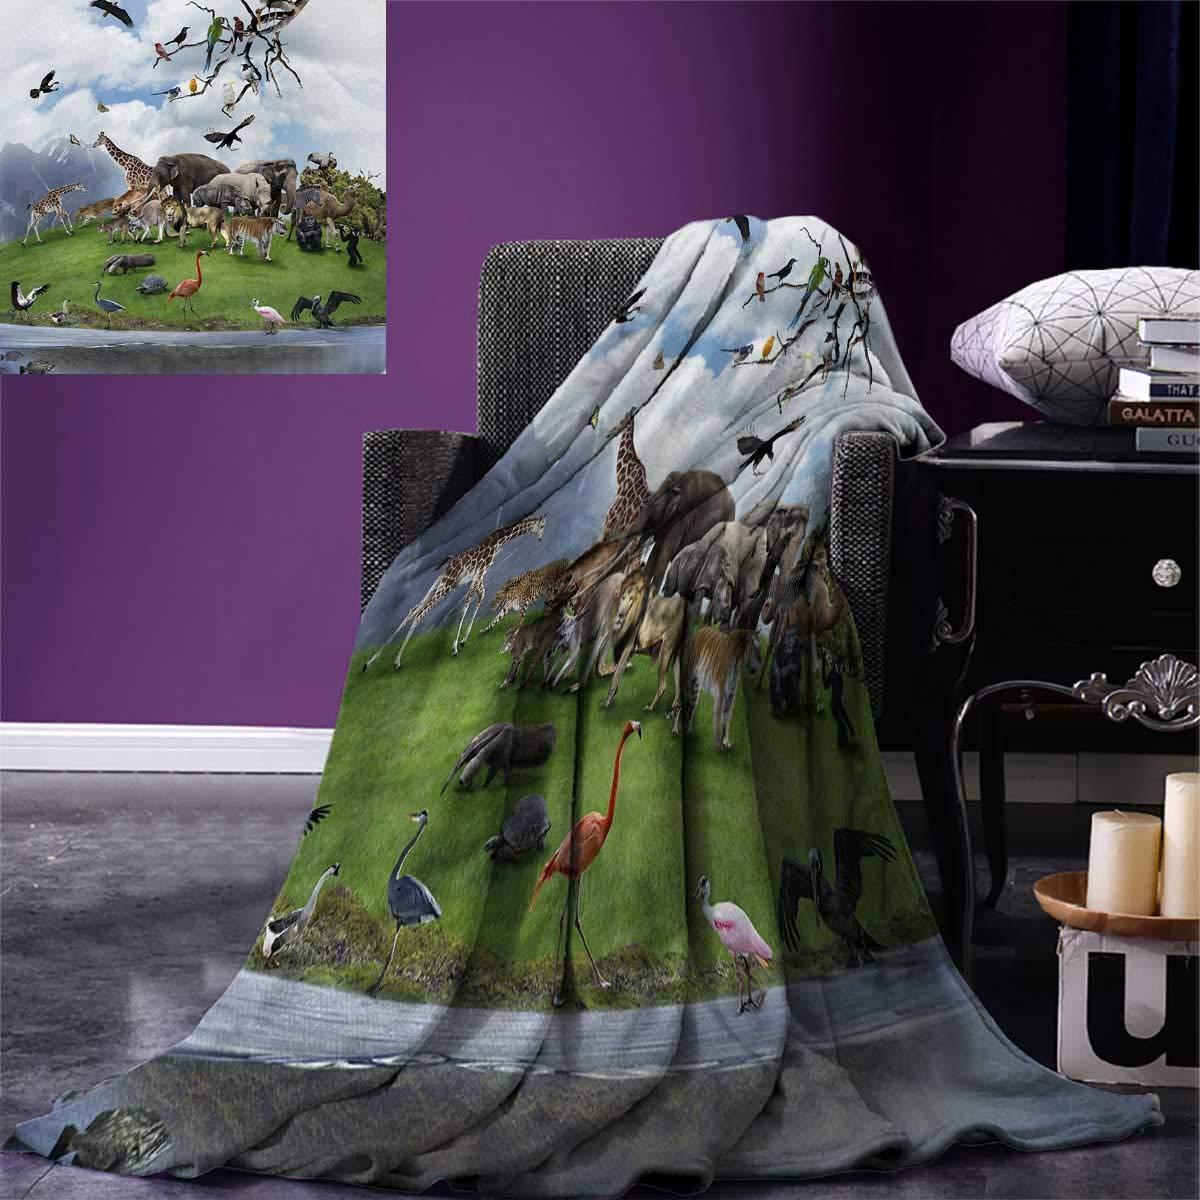 smallbeefly Africa Lightweight Blanket Tropic Animal Collage in The Valley Lion Parrot Swans Elephants Flamingos Digital Printing Blanket 60''x36'' Multicolor